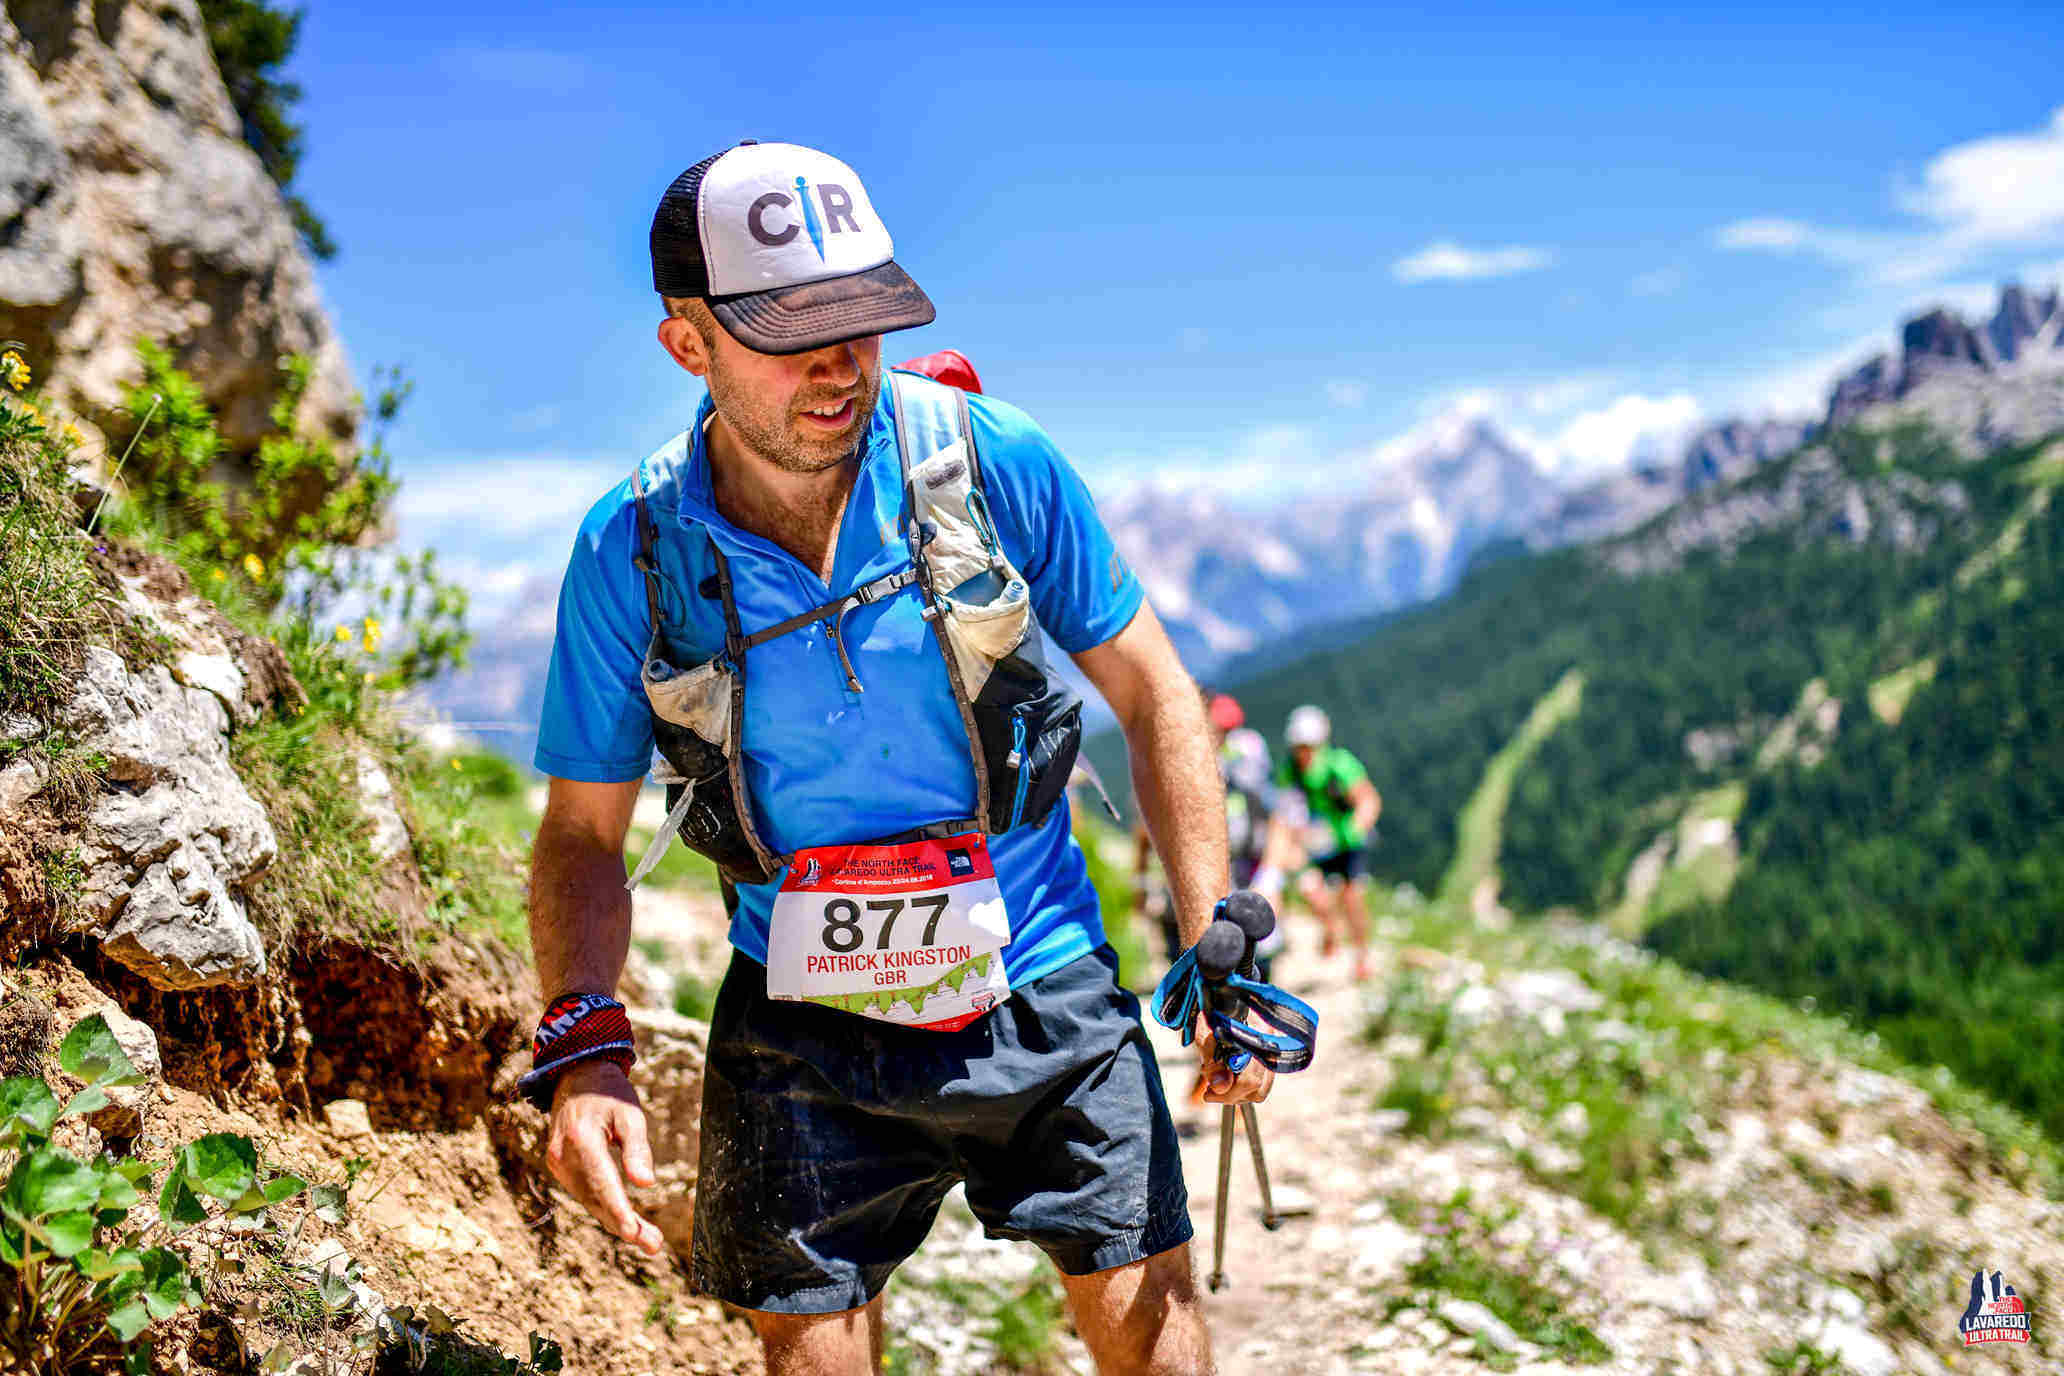 Patrick Kingston took on the  the Grand Raid des Pyrénées  Ultra in 2018. It's a race that's  164km (100 miles) long,  with more than  10,000 metres of climbing  - That's 2,000 metres higher than Everest!